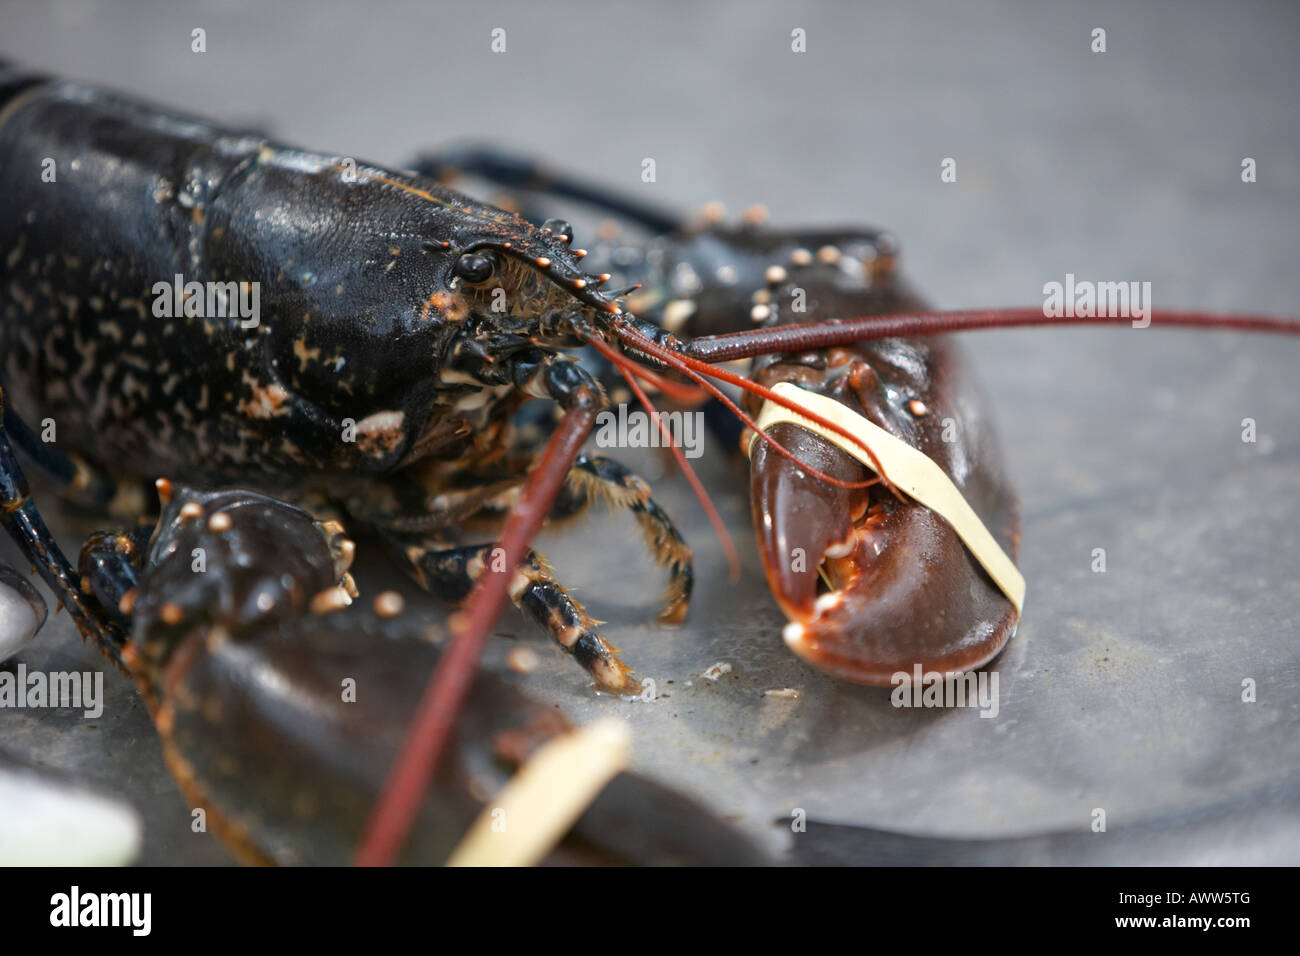 fresh live lobster with claws tied up sitting on a fishmongers fresh fish stall at an indoor market - Stock Image